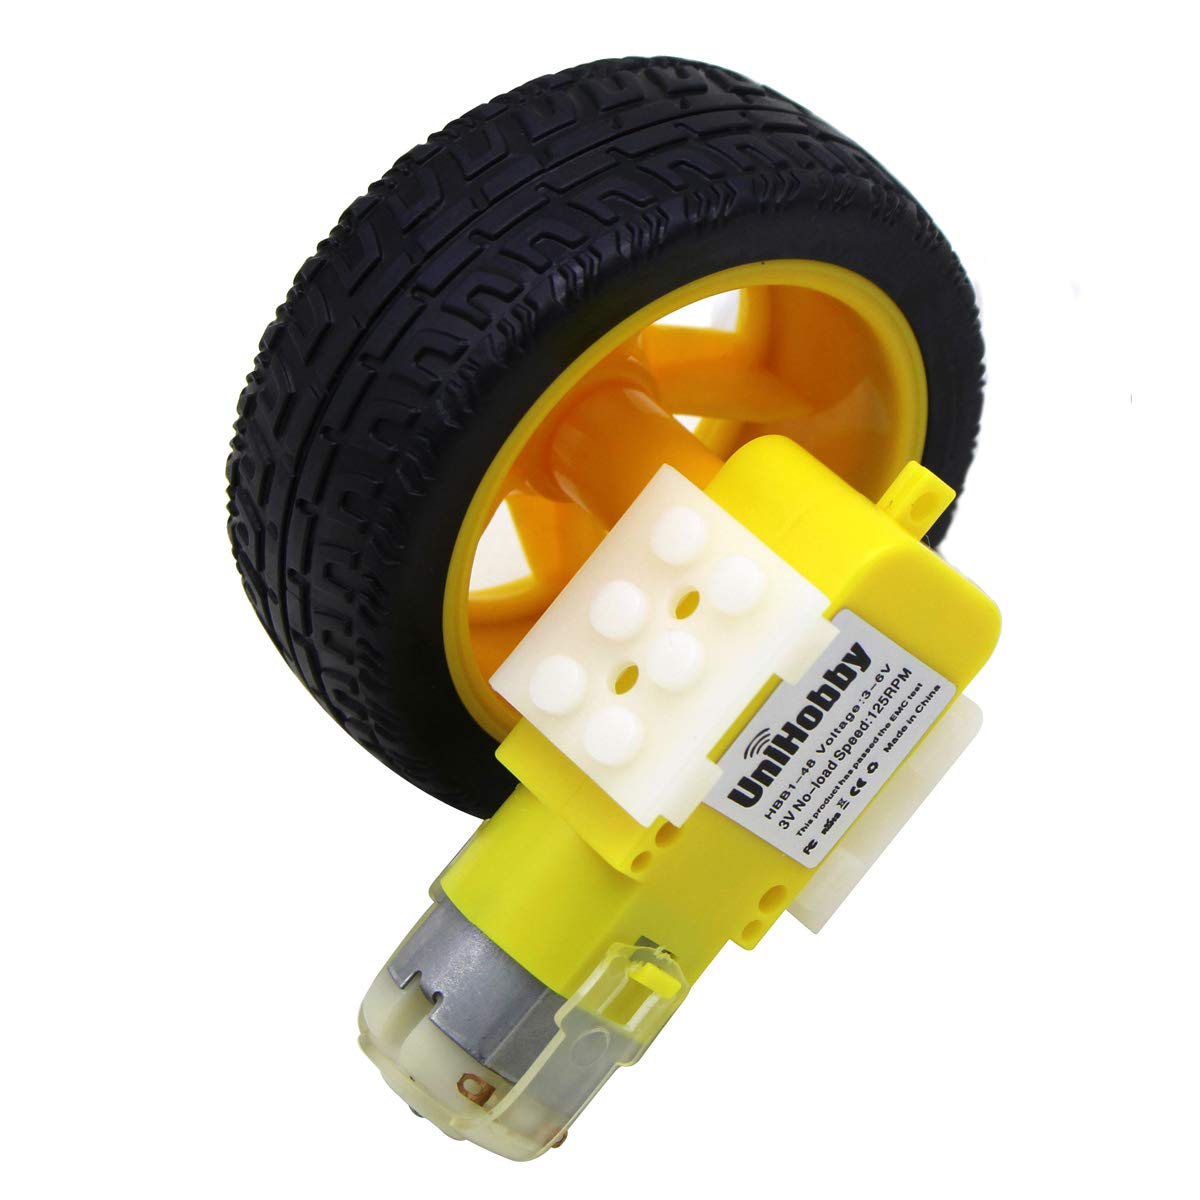 DC3V-6V DC Geared Motor TT For Robot Smart Car Chassis DIY Anti-interferen